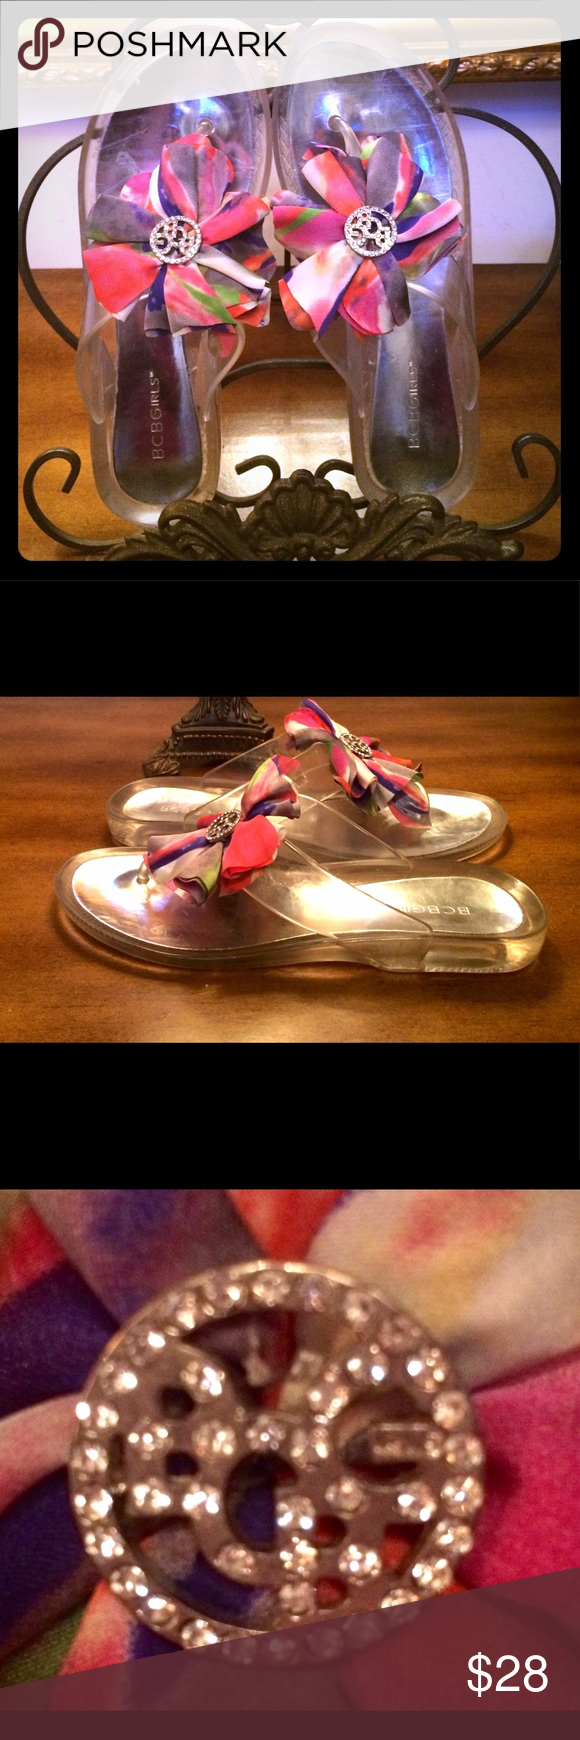 d4bb31d1a BCBG Sandals 8 Clear Rhinestone logo flower silk BCBG jelly Sandals.  Gorgeous